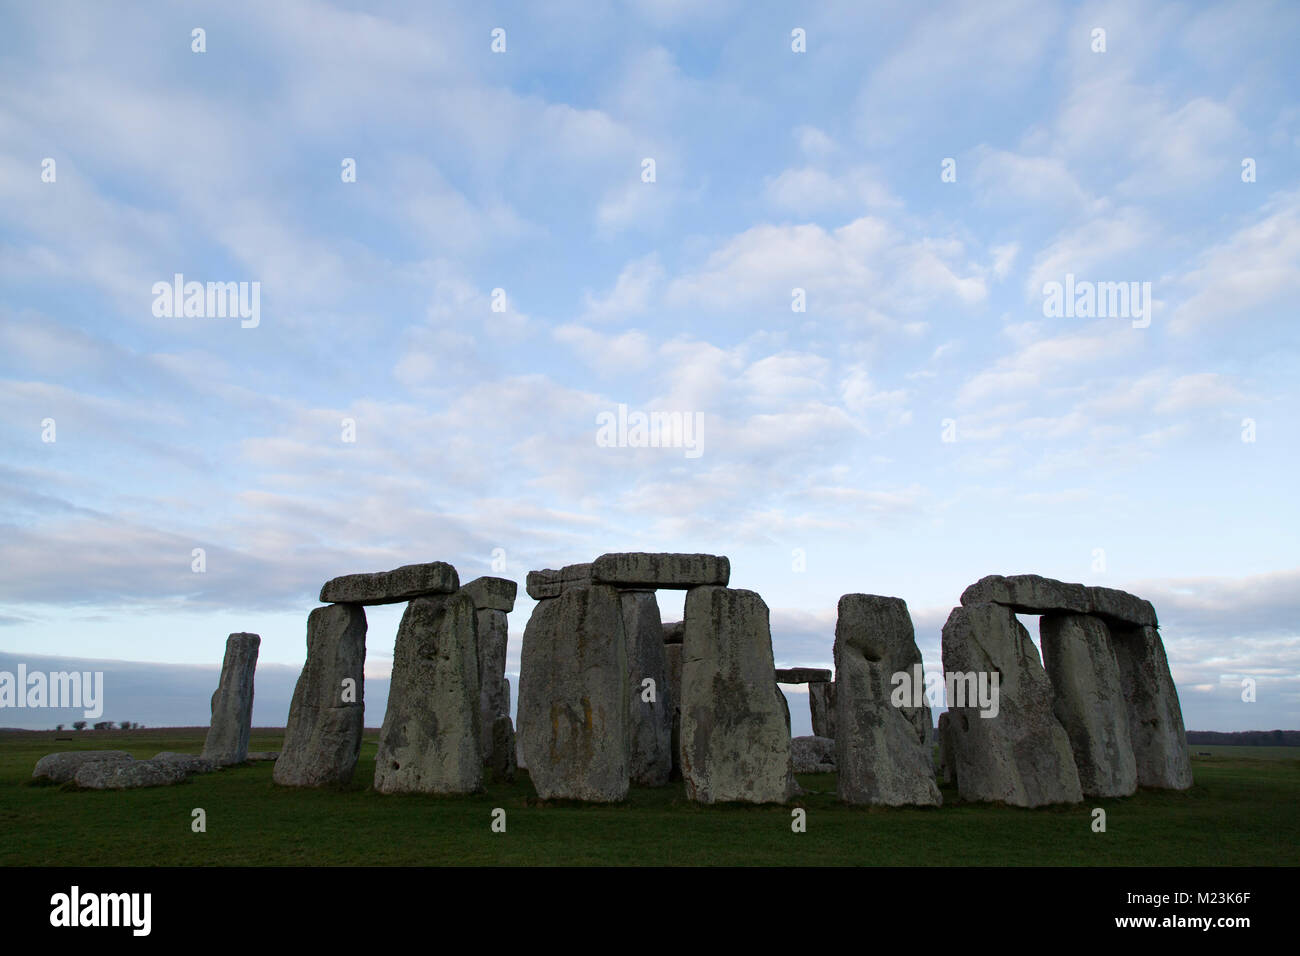 The Stonehenge stone circle in Wiltshire, England. The ancient monument dates from the Neolithic era, around 5,000 Stock Photo